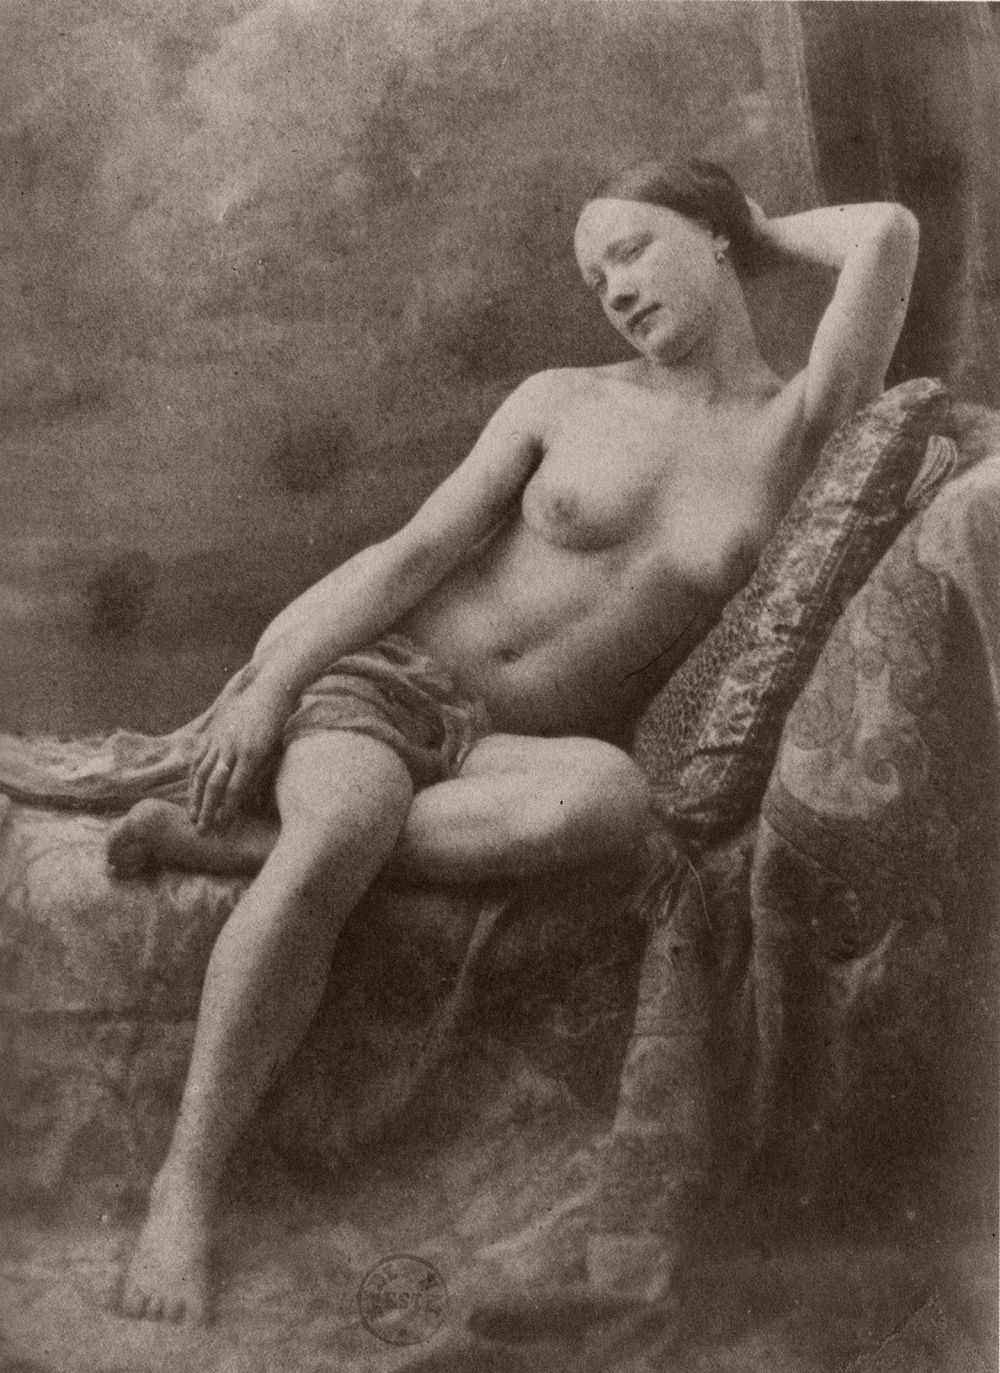 Photograph by Jean Louis Marie Eugène Durieu, part of a series made with Eugène Delacroix